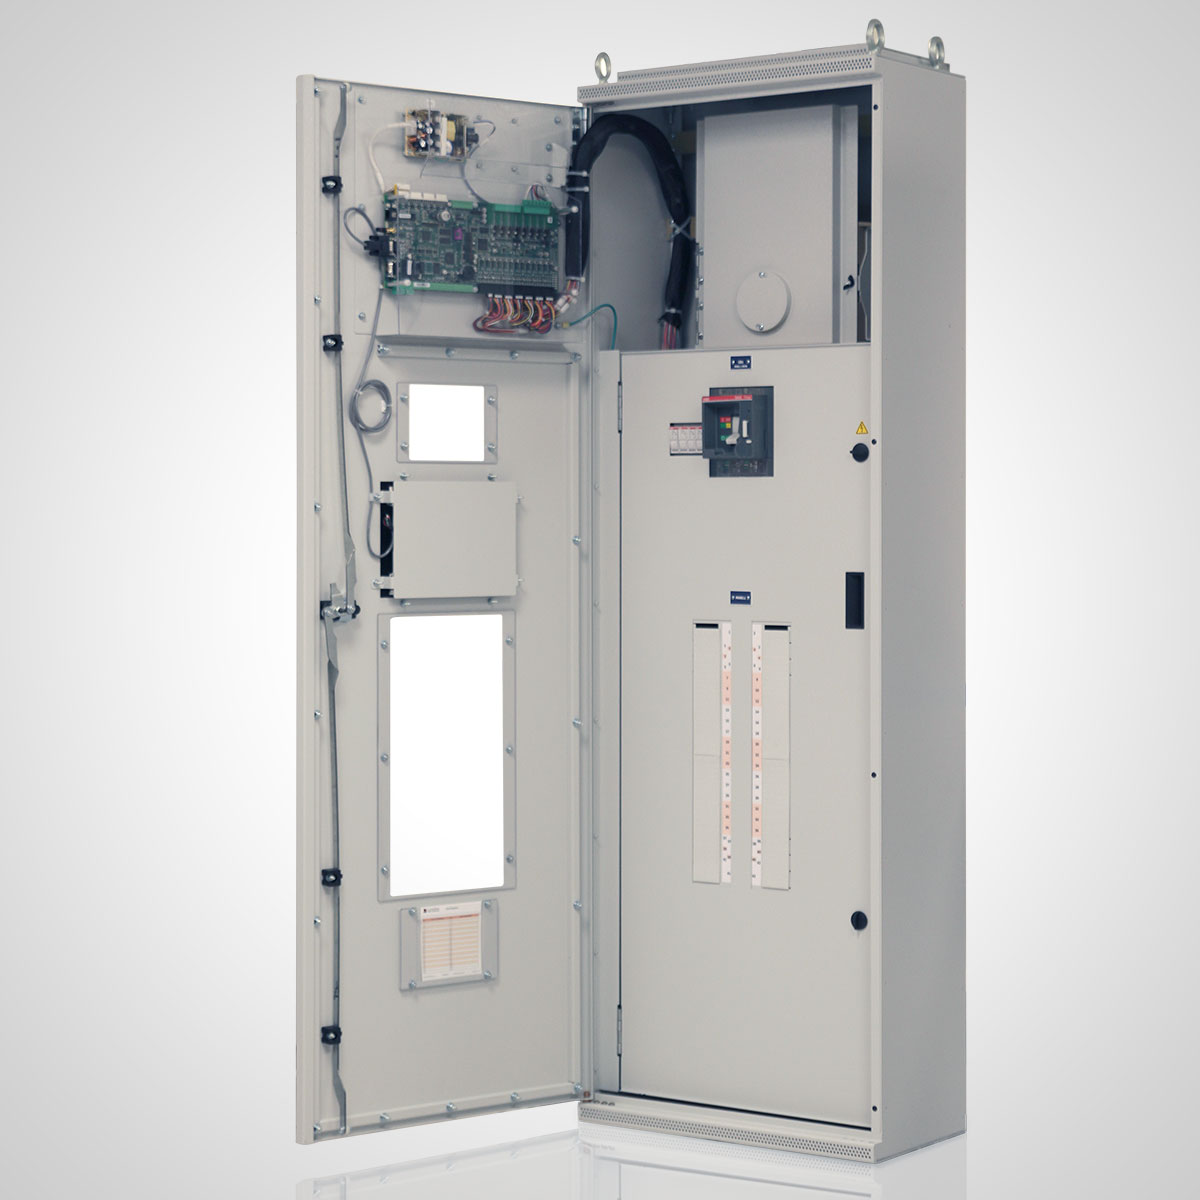 Two LayerZero Series 70: eRPP-SL1 the Outer Door Open.